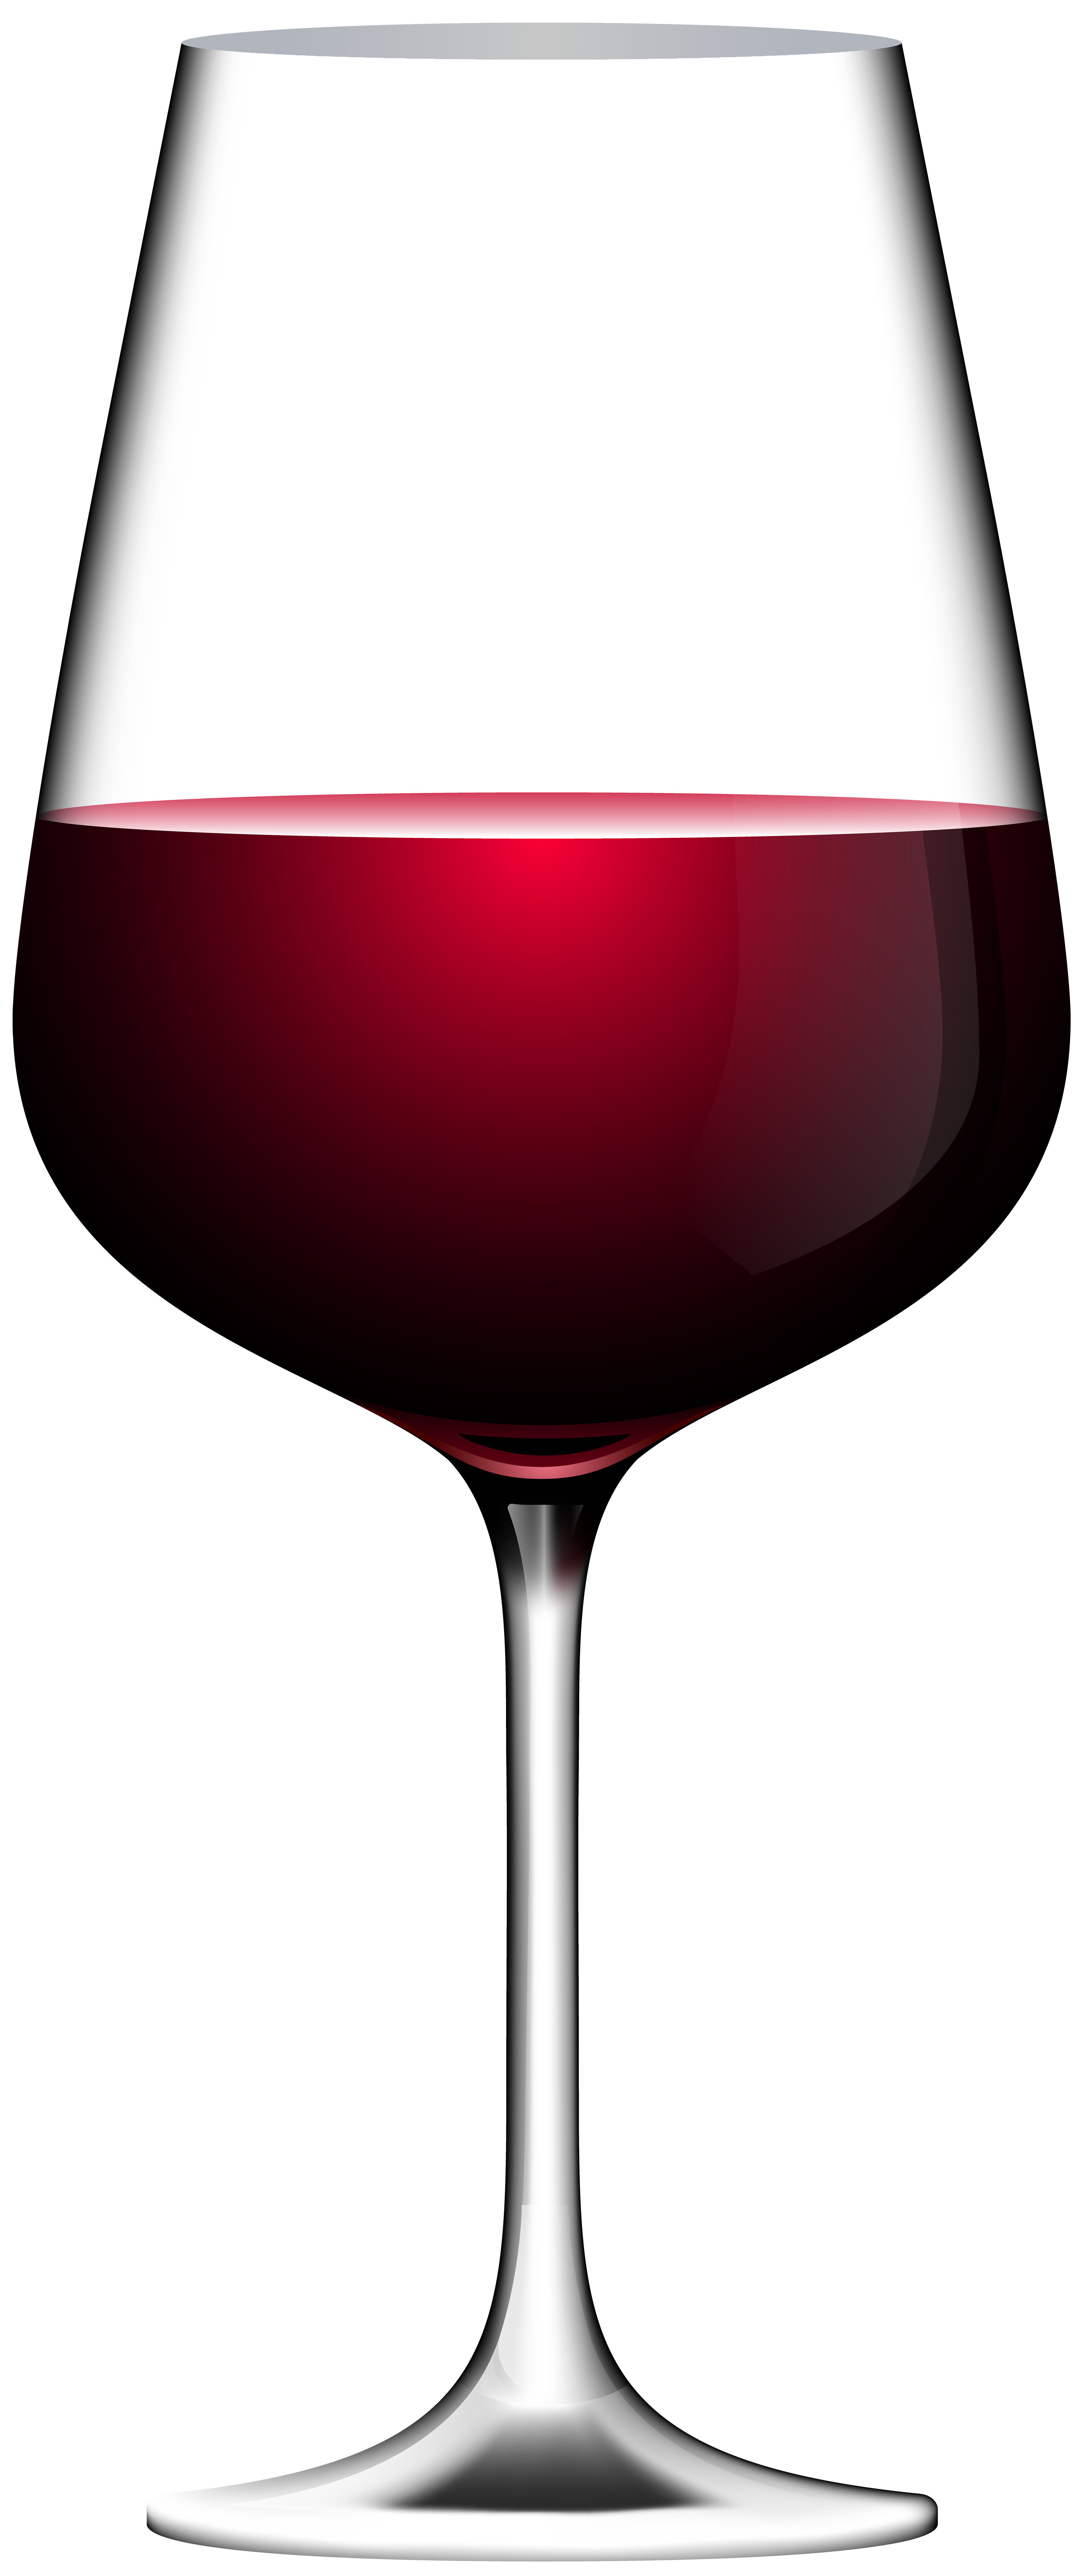 Wine glass clip art png. Red transparent image gallery